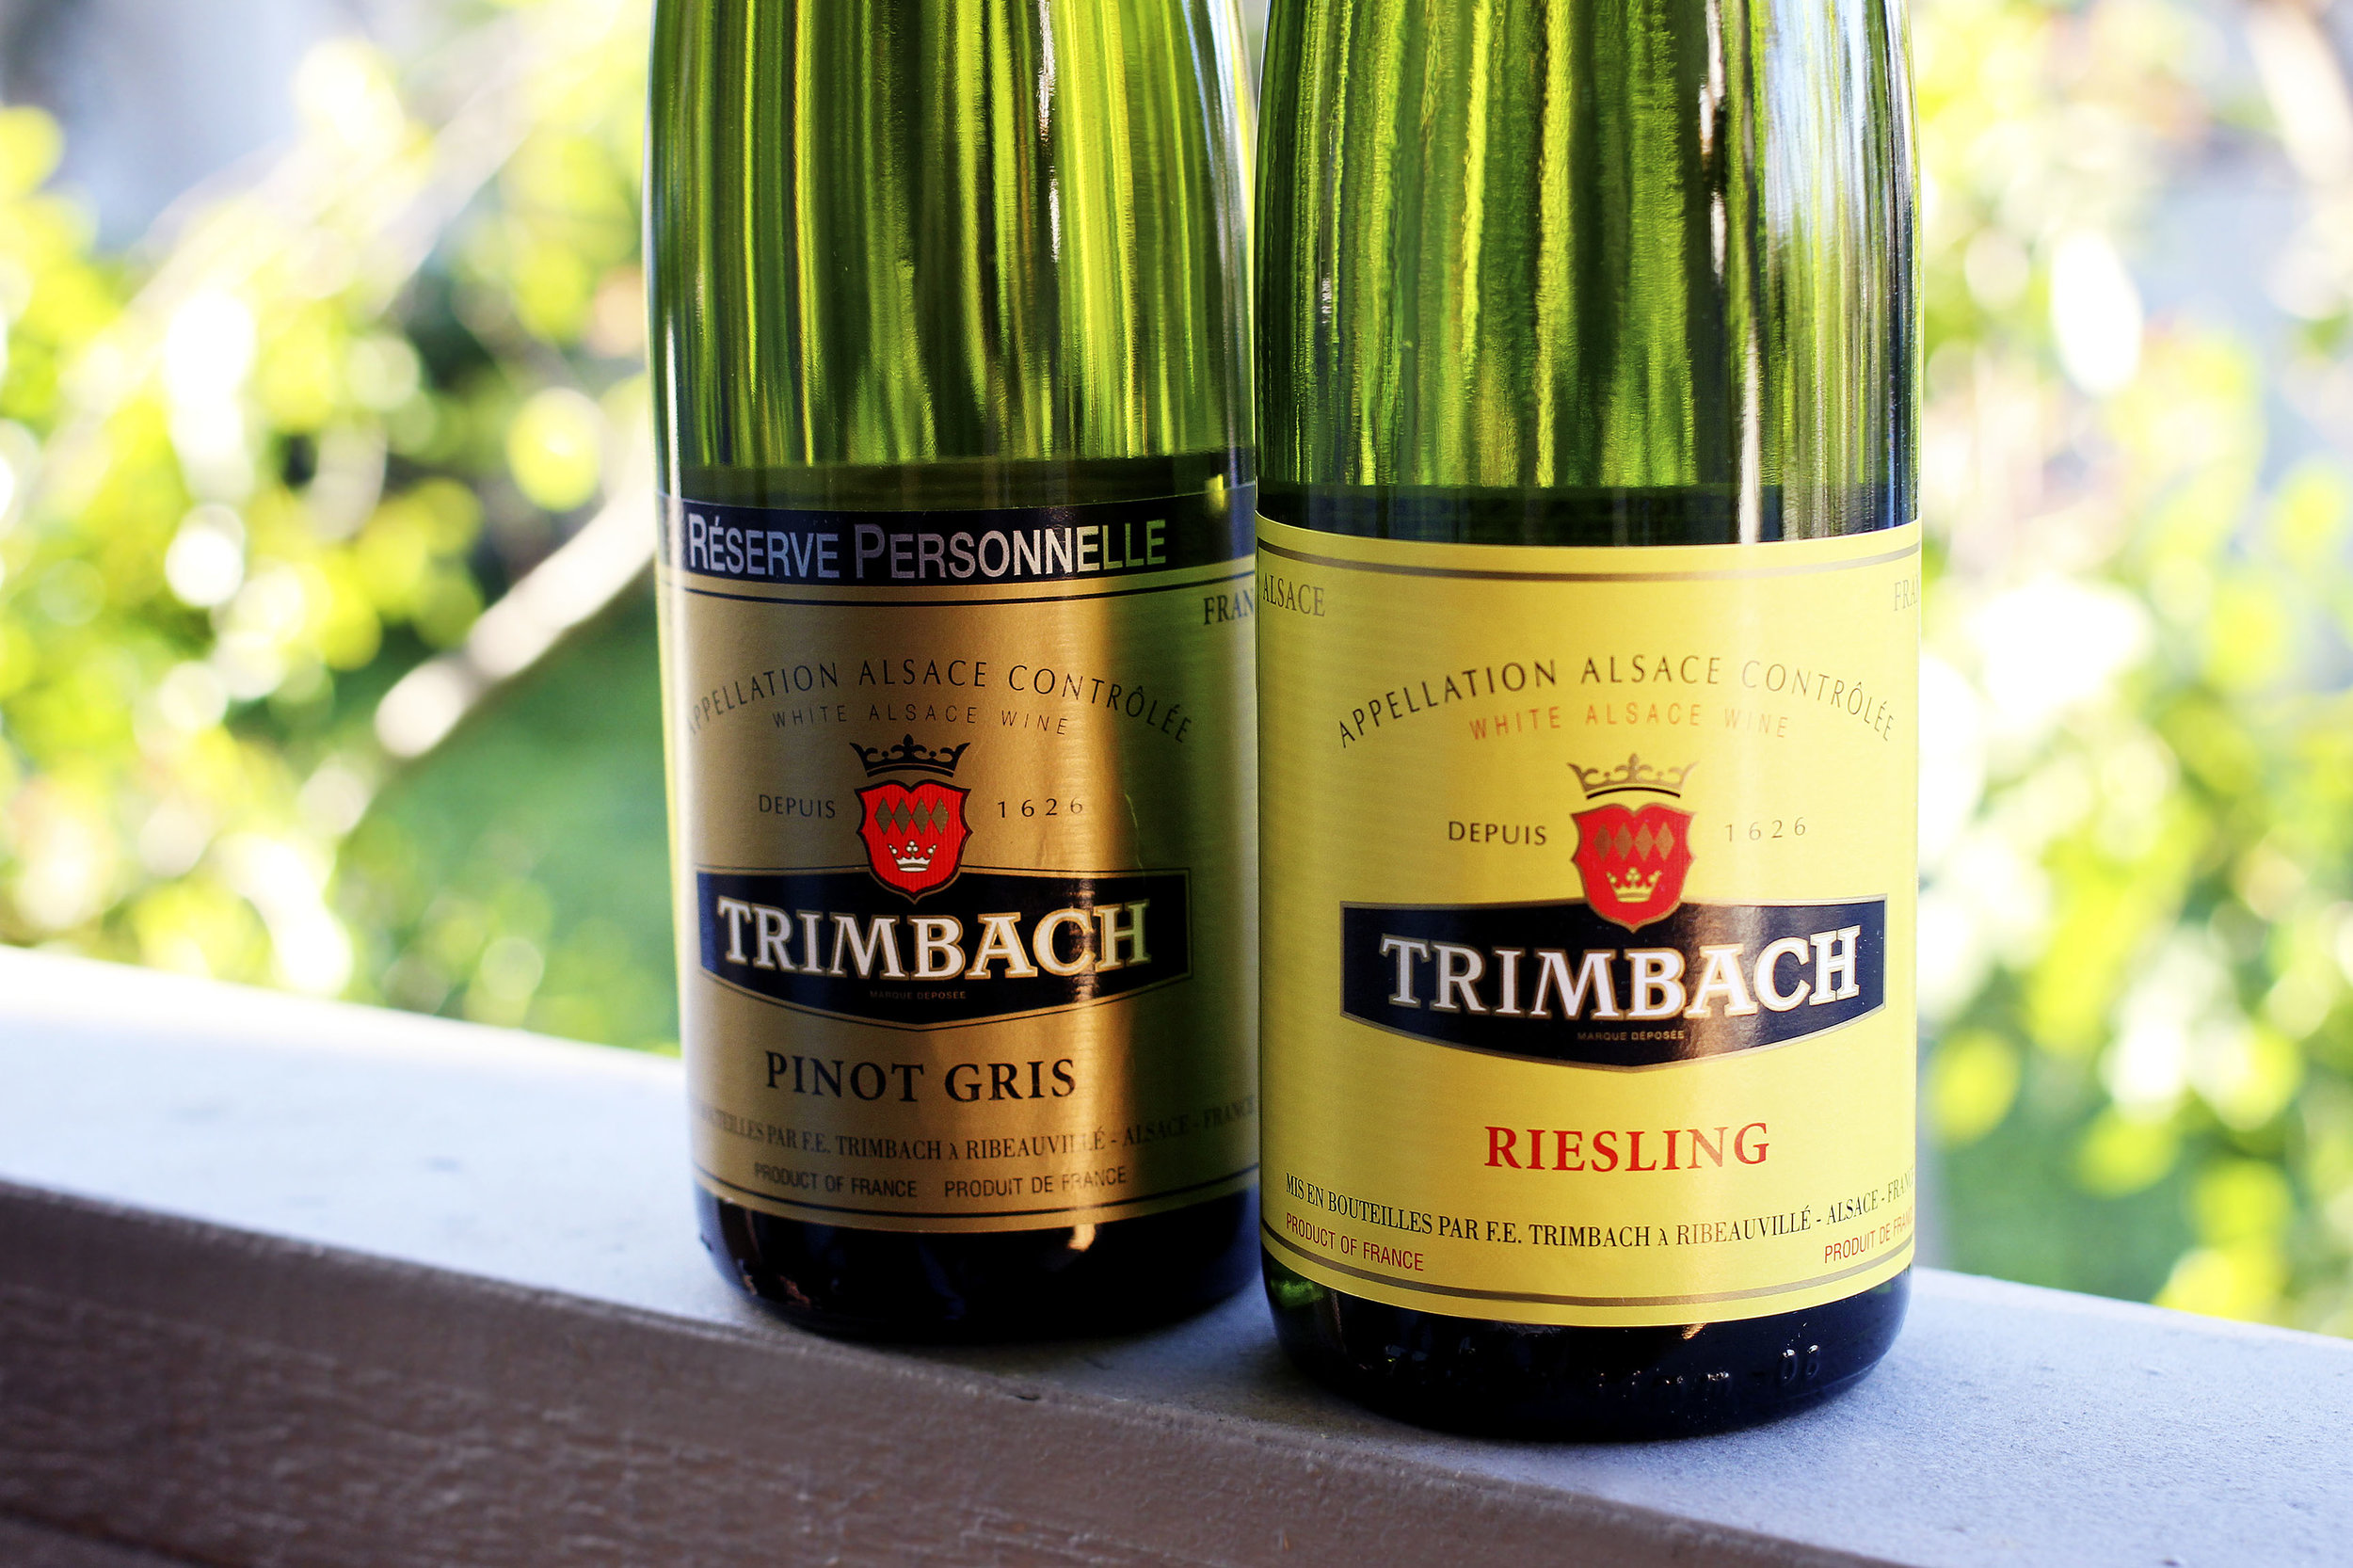 Click the photo to learn more about Trimbach wines.